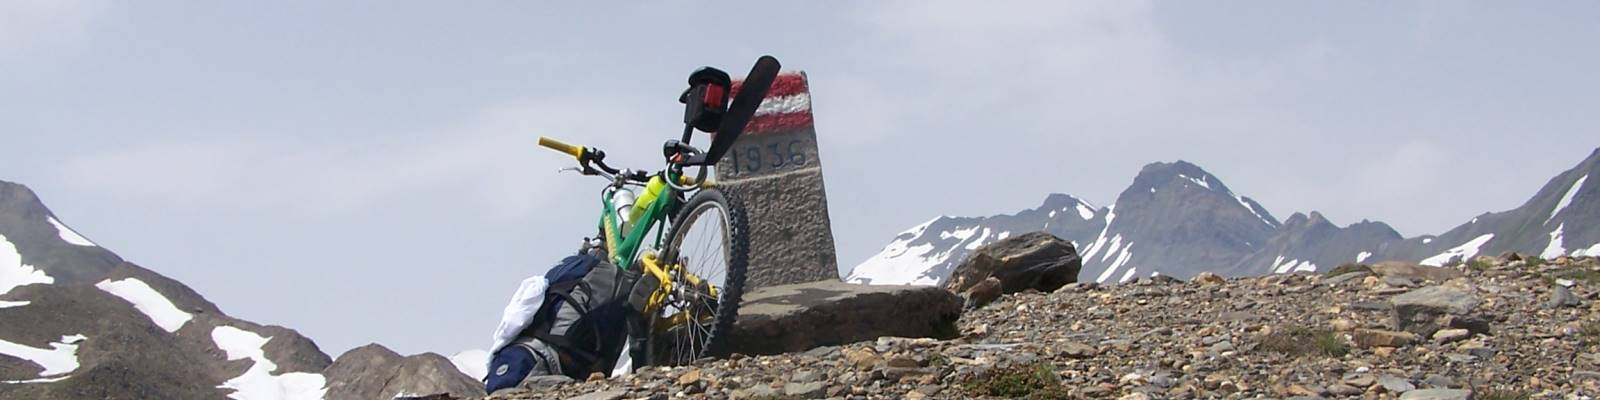 3x Mountainbike Transalp